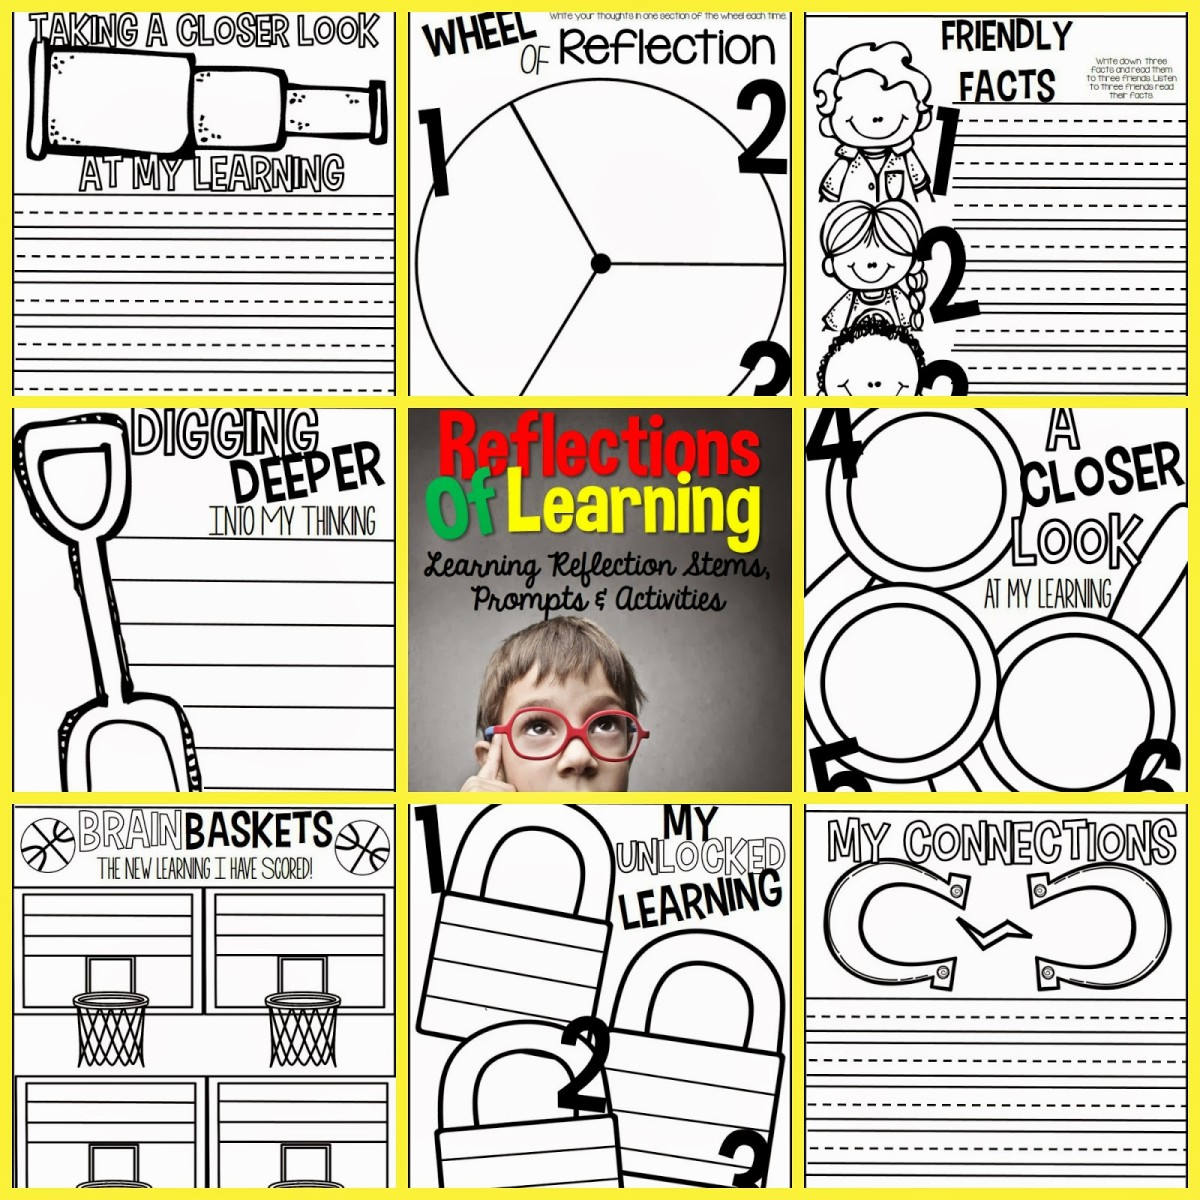 http://www.teacherspayteachers.com/Product/Reflections-of-Learning-Printables-and-Activities-for-Student-Reflection-1151182